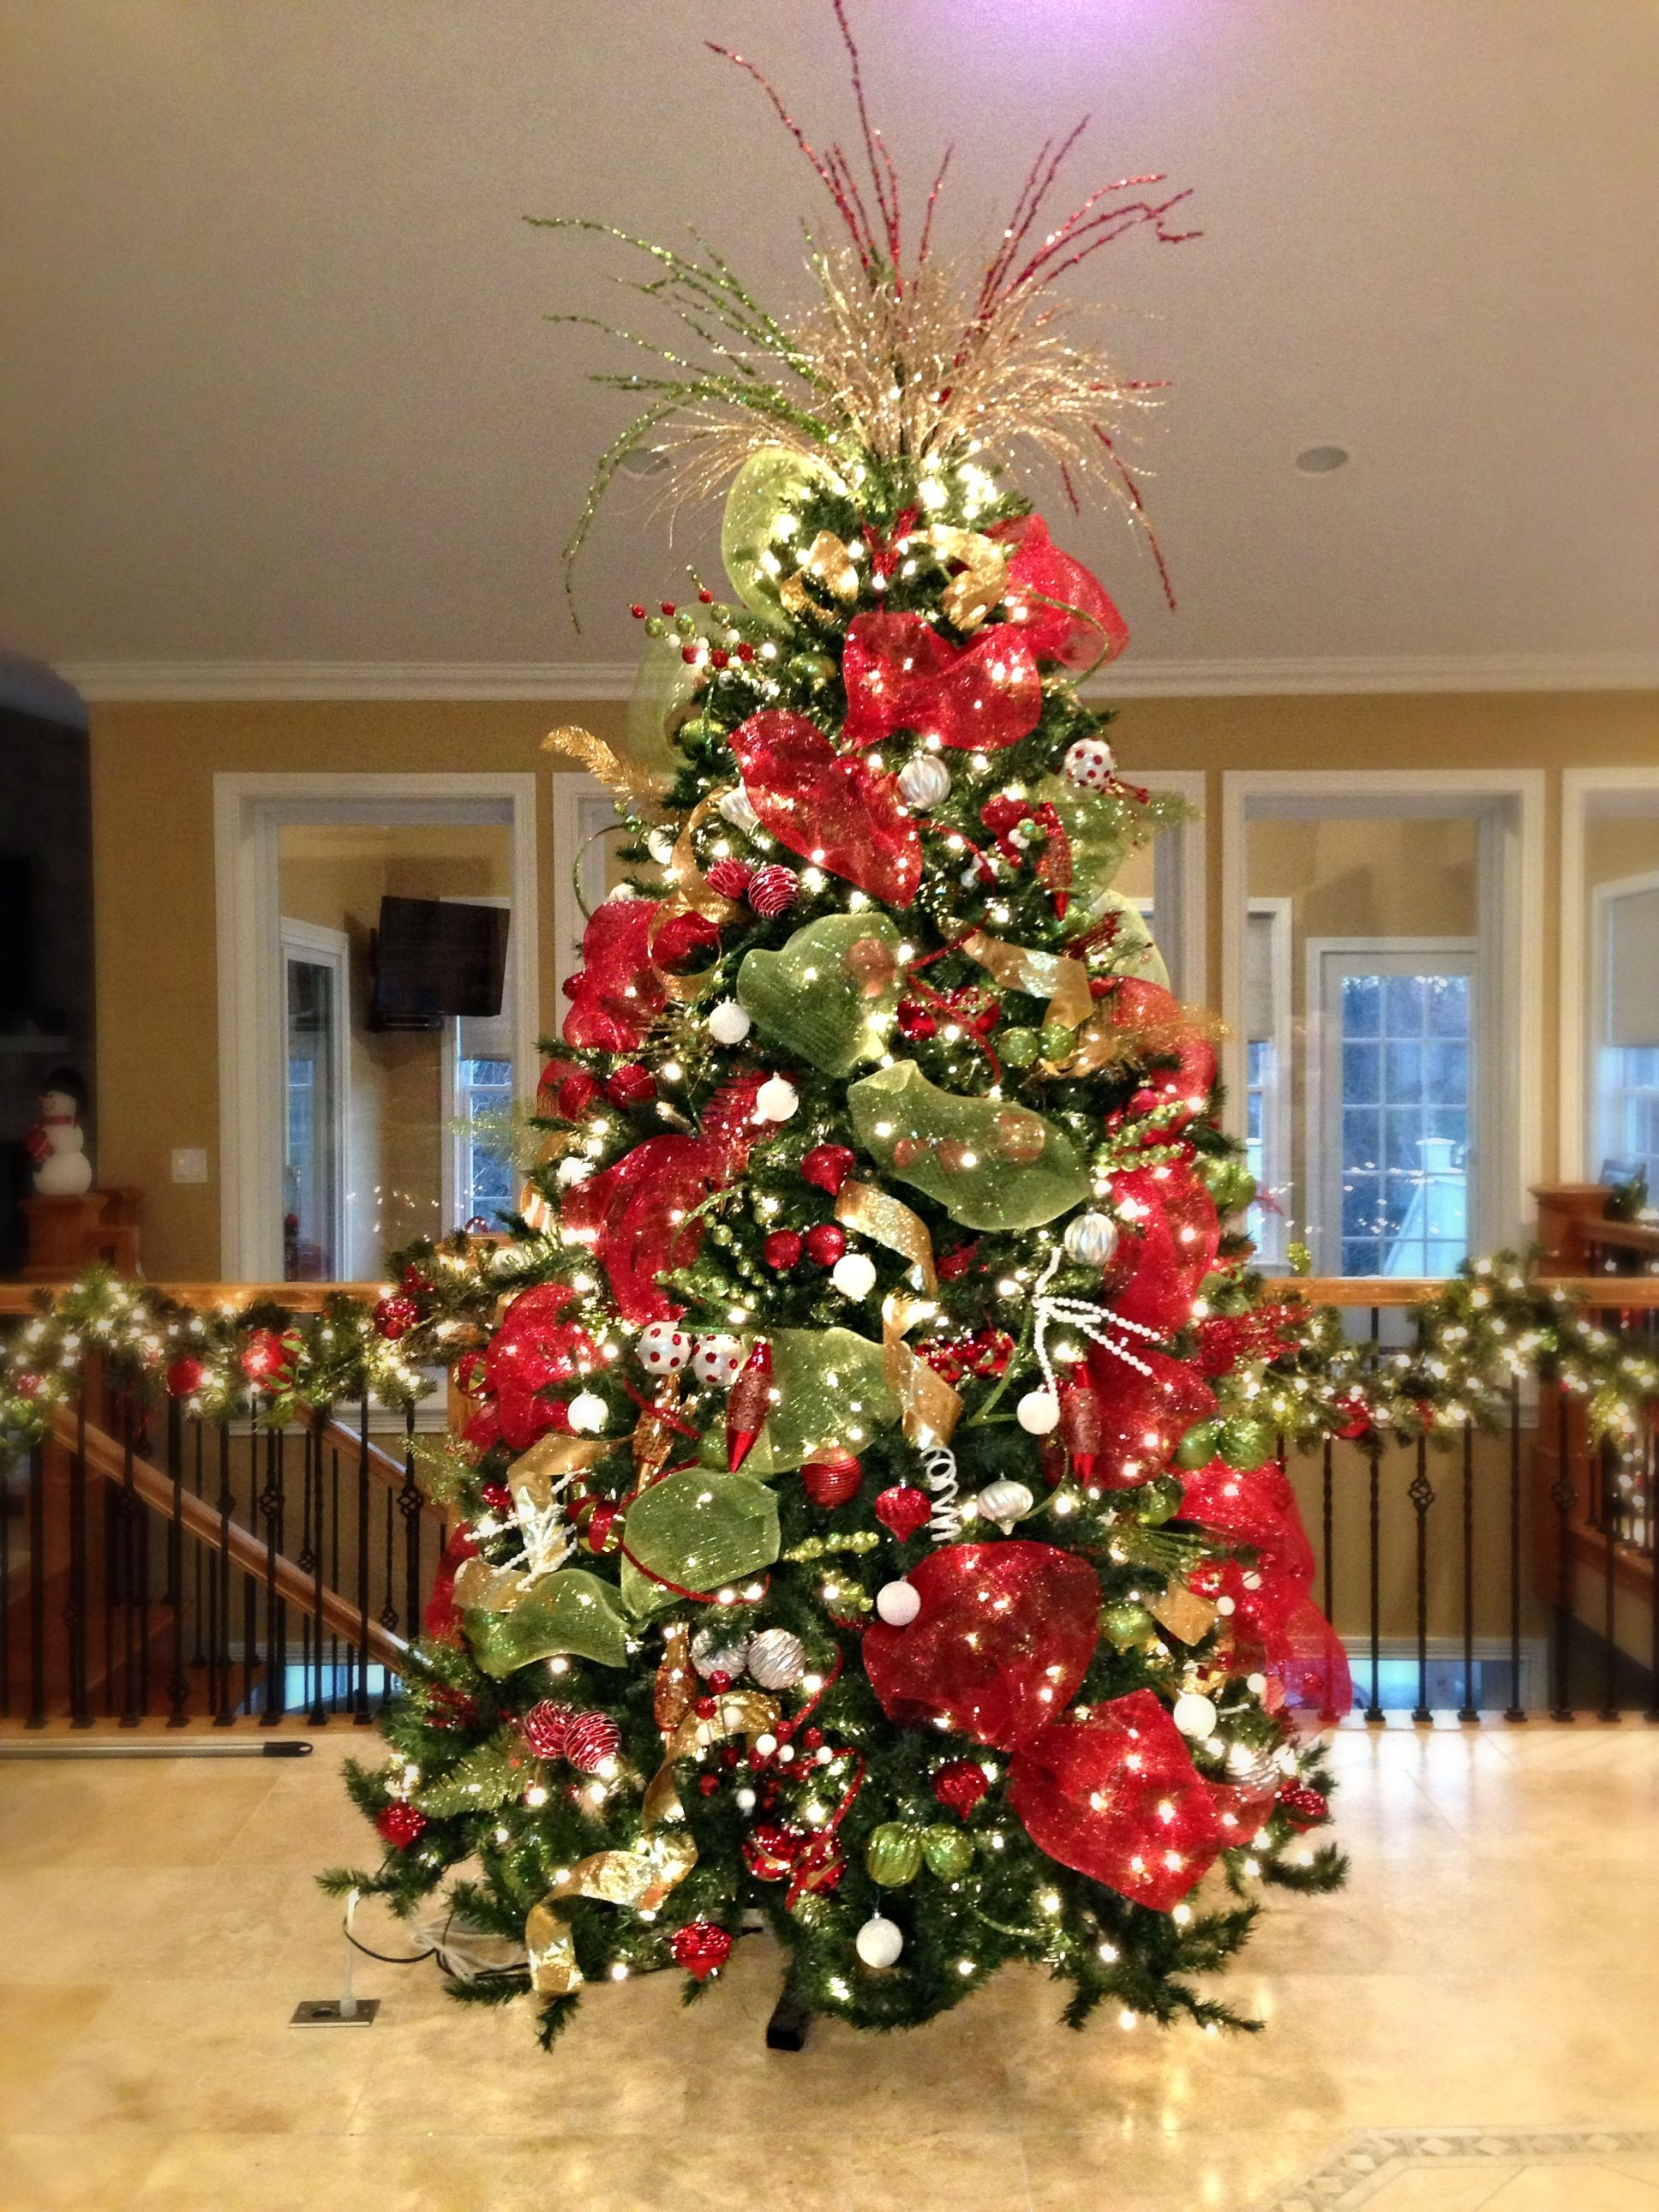 Red, White, and Green Christmas Tree - Substitute the white with gold  possibly